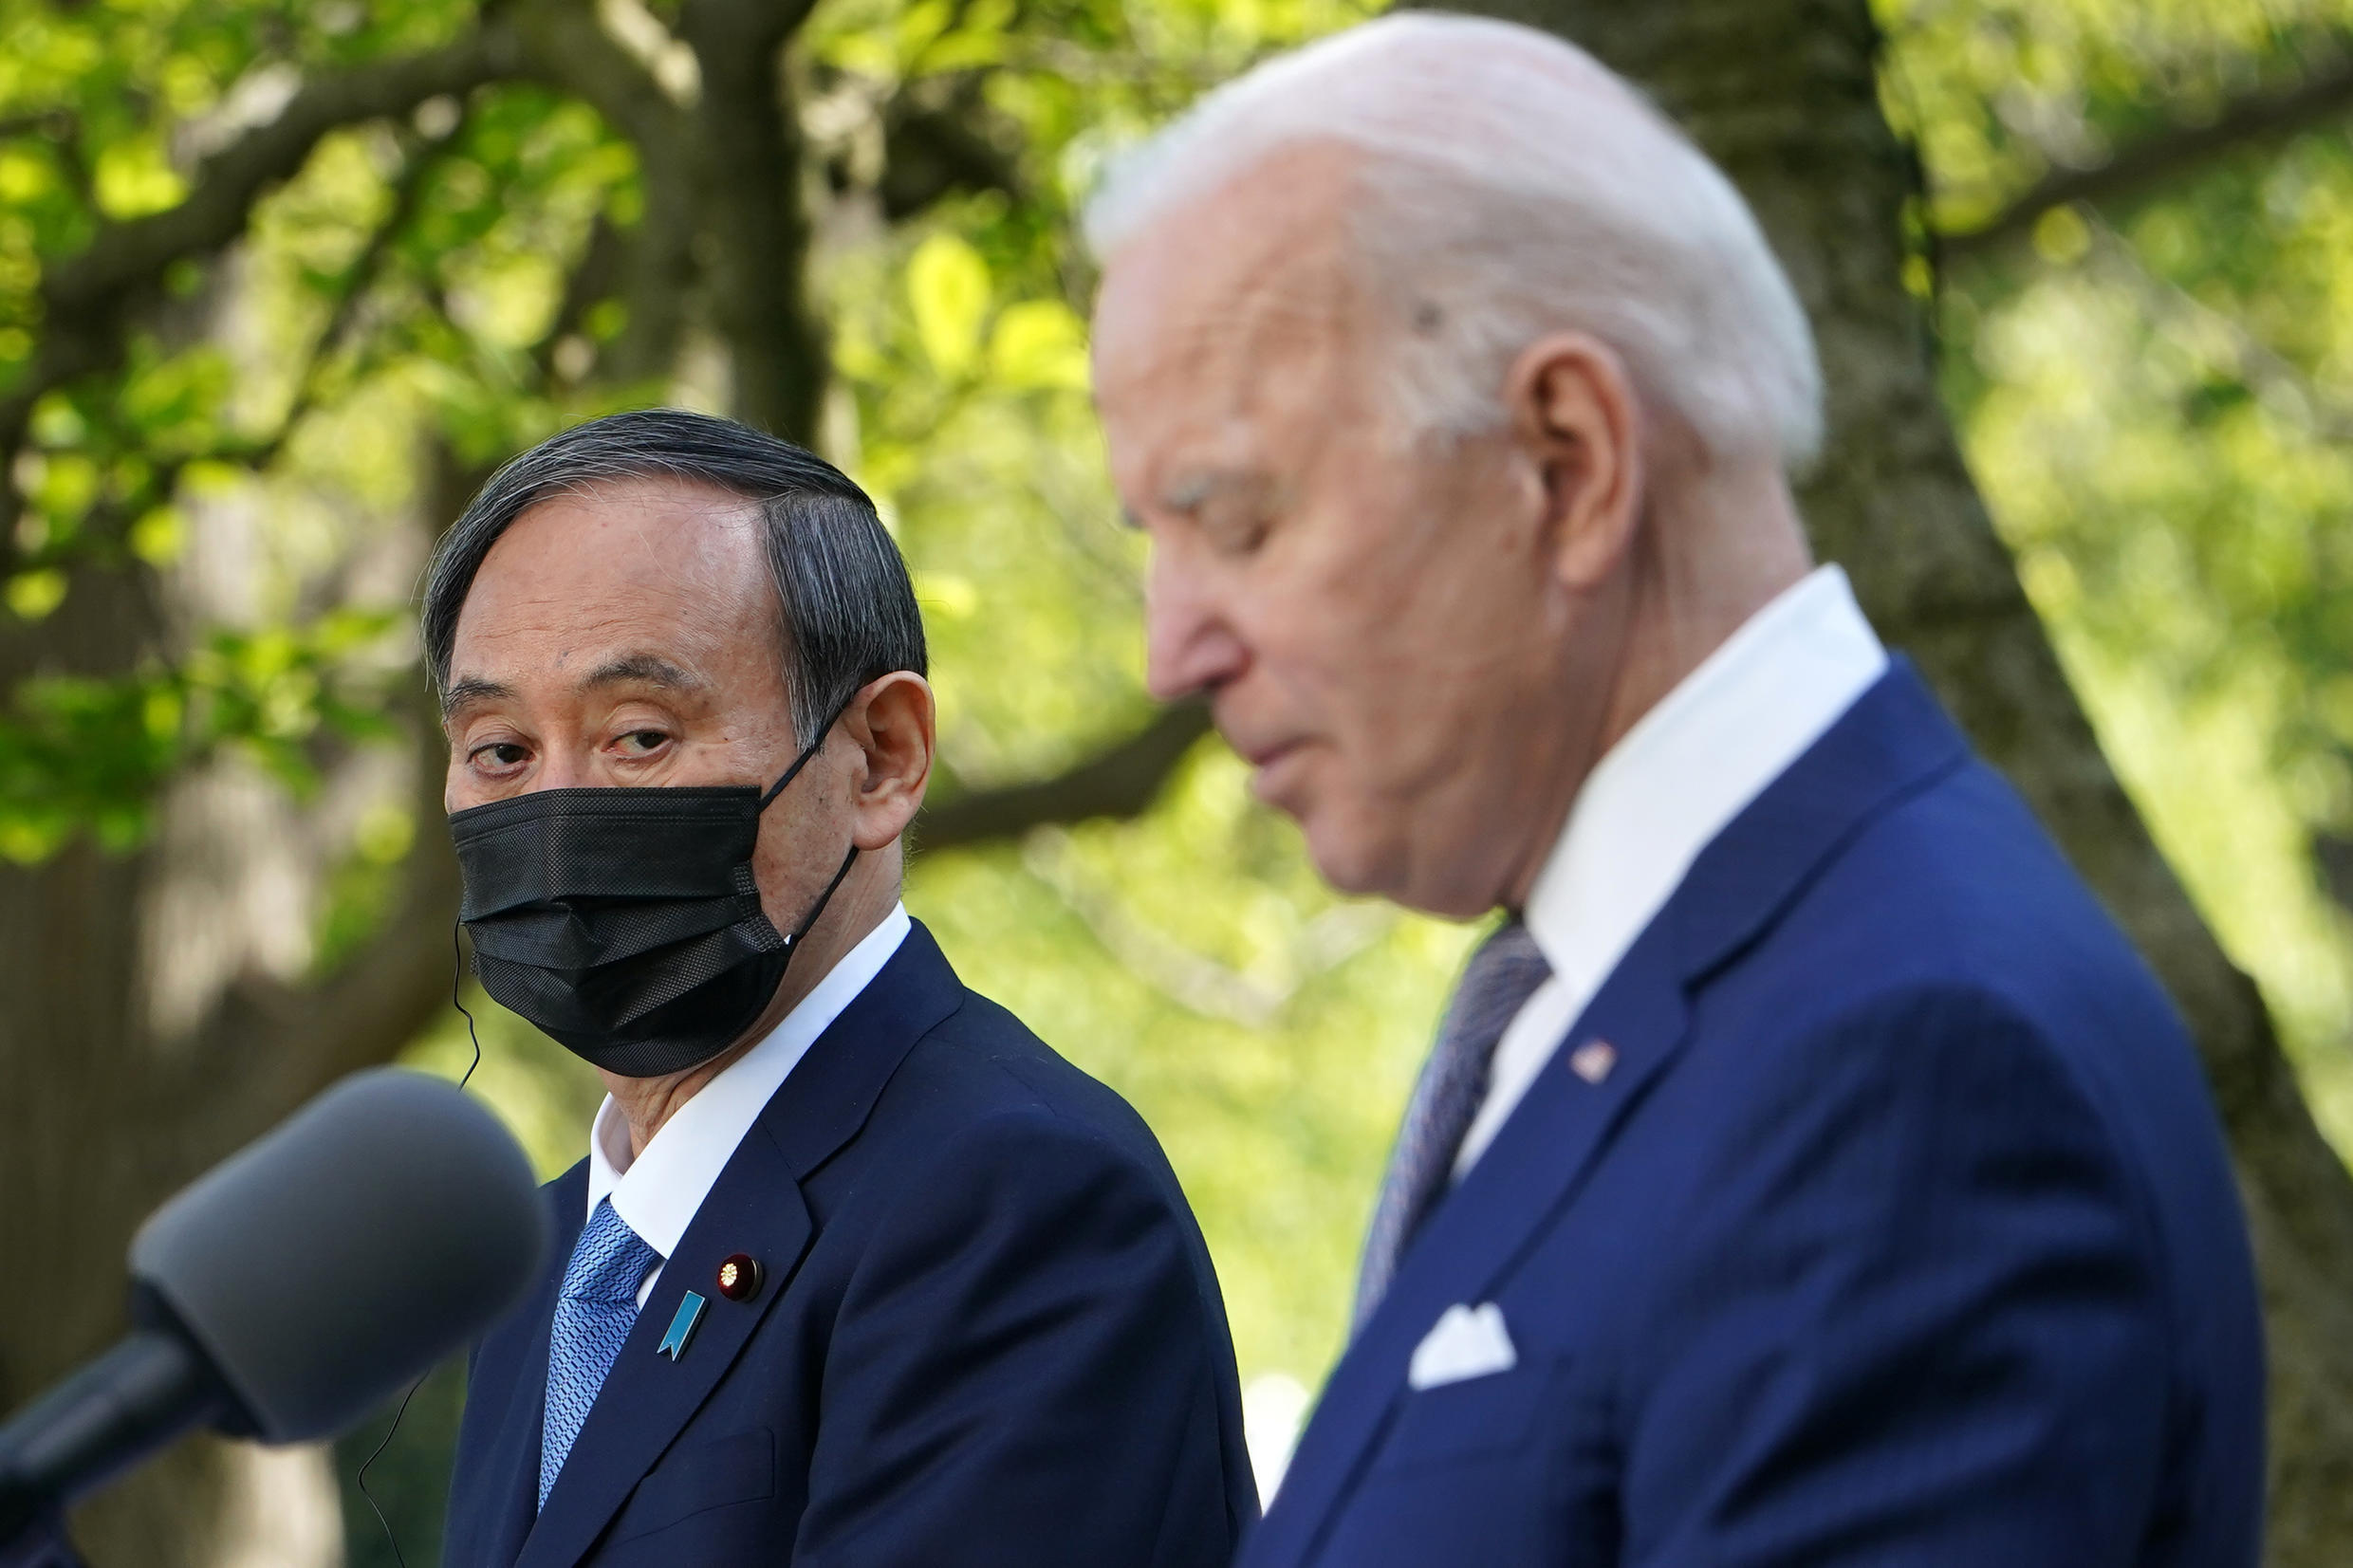 US President Joe Biden speaks at a joint news conference with Japan's Prime Minister Yoshihide Suga